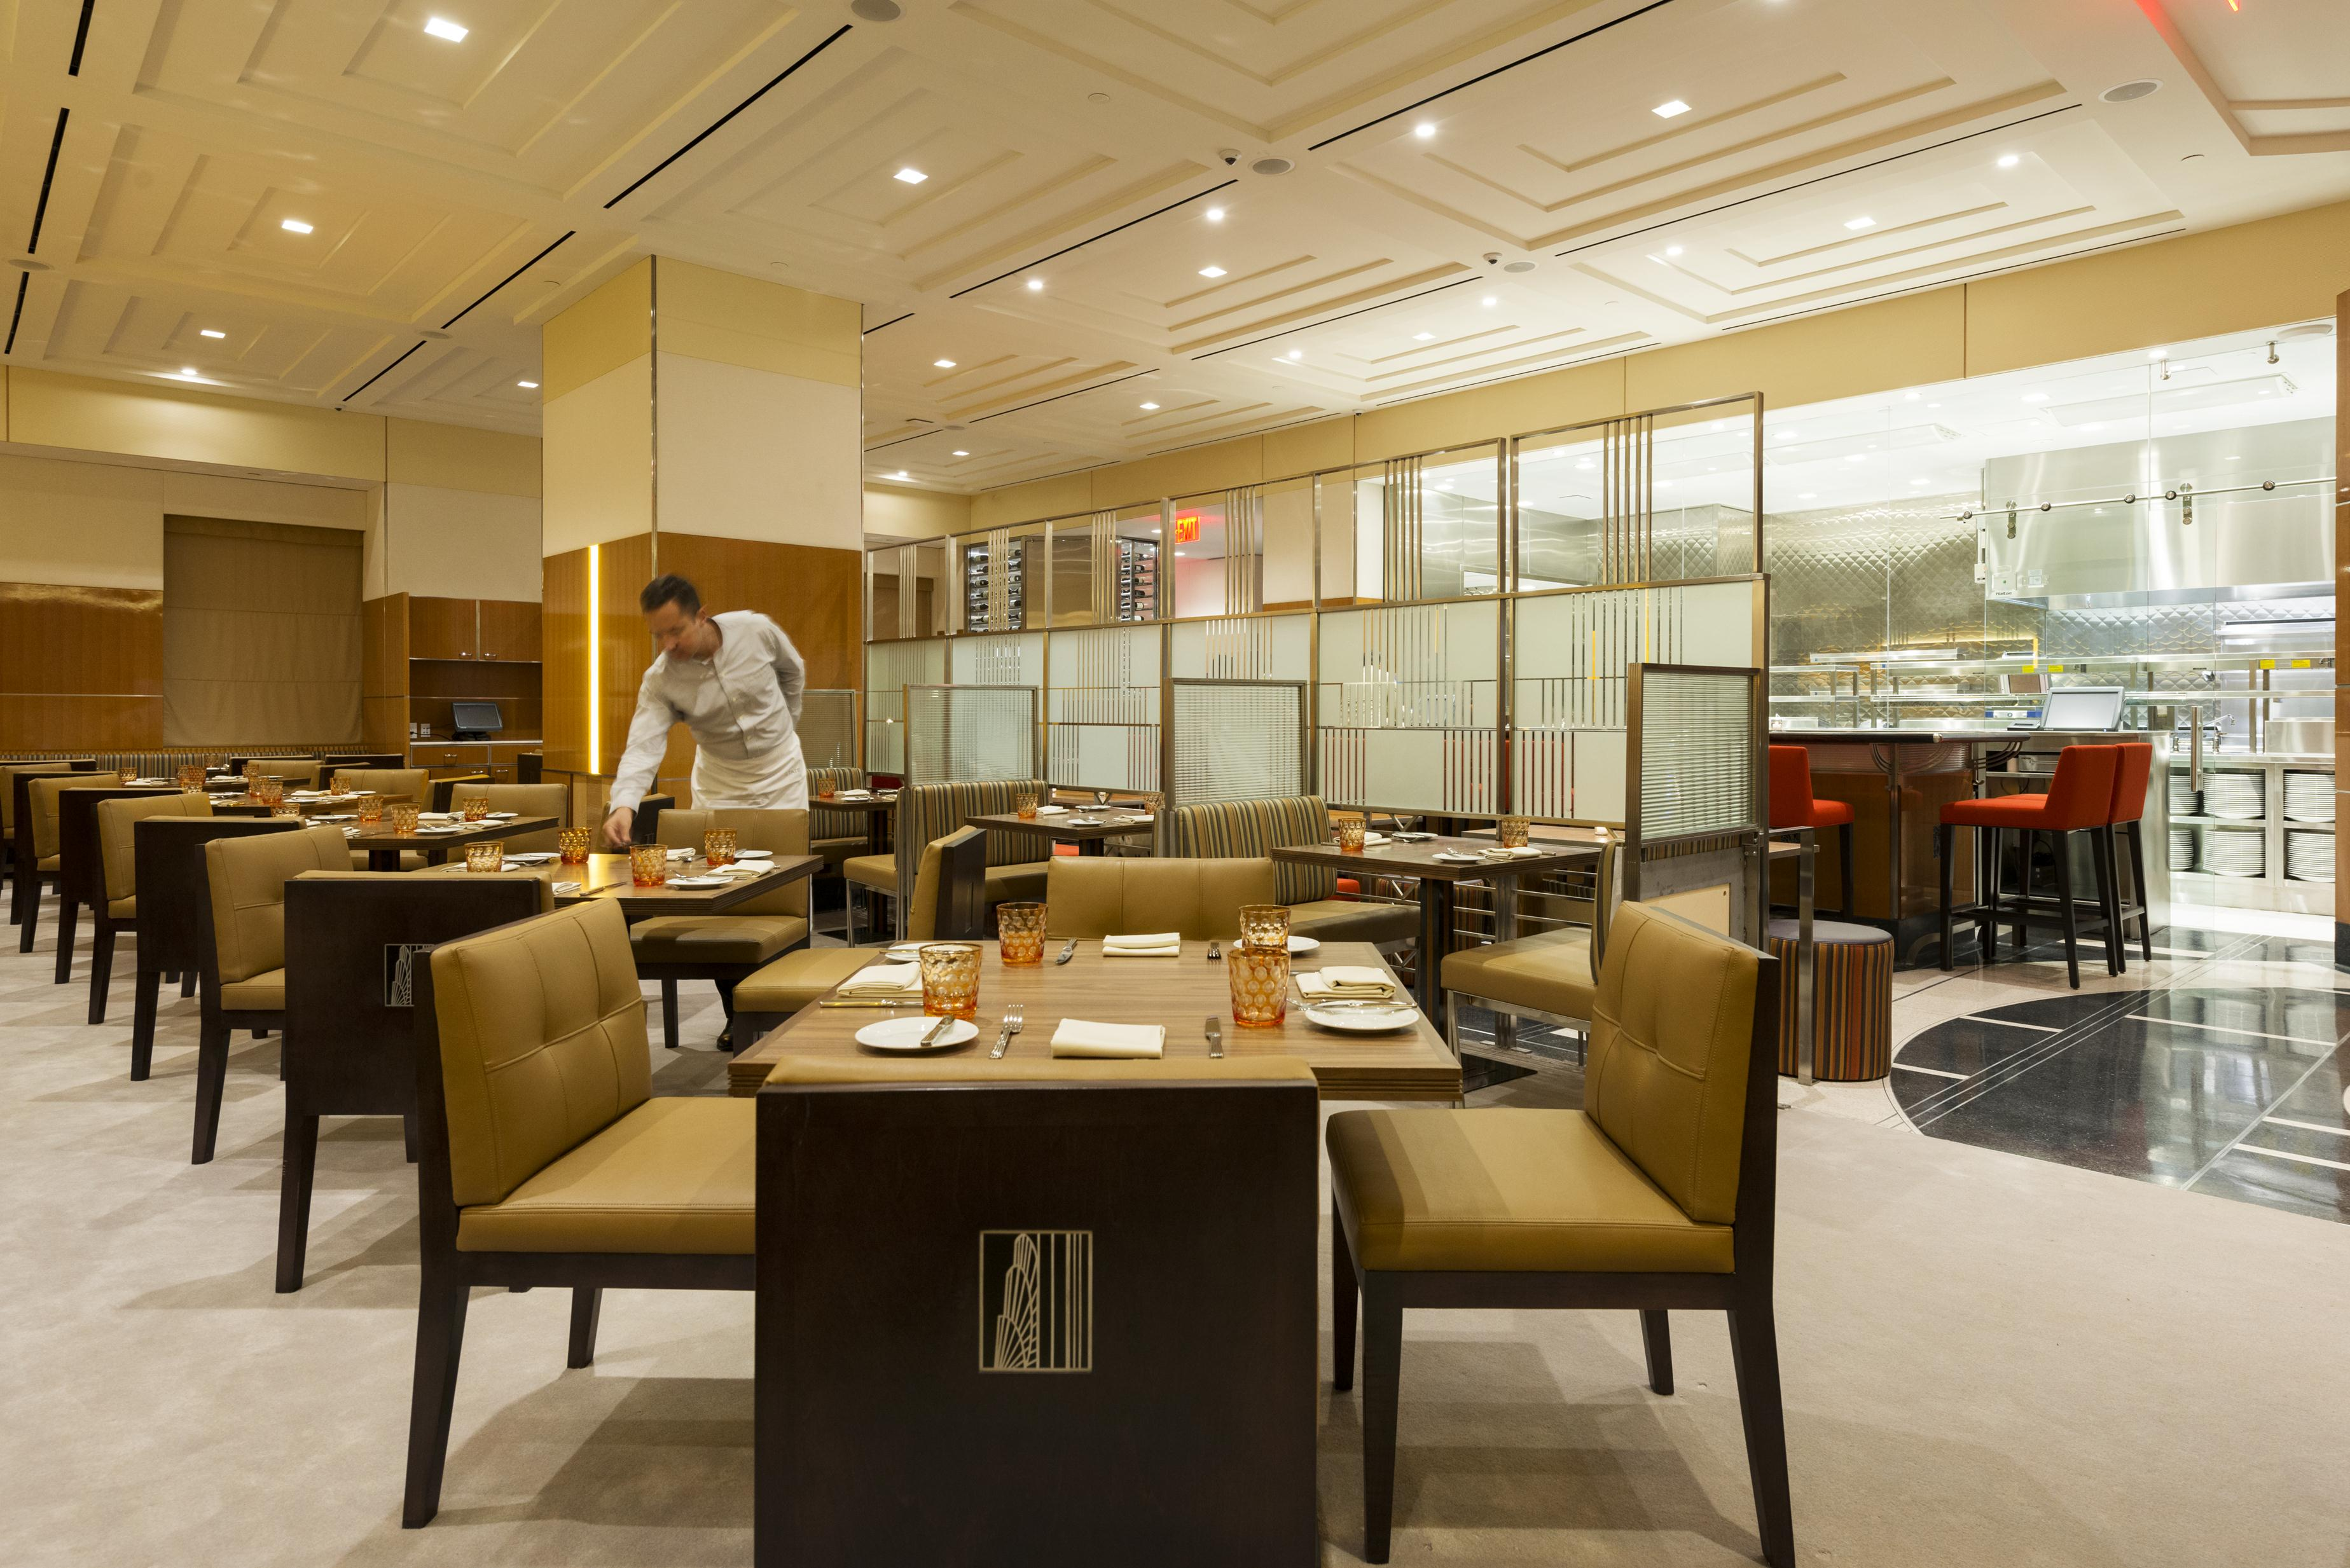 State grill and bar grand opening at esb empire state building - Restaurant bar and grill ...